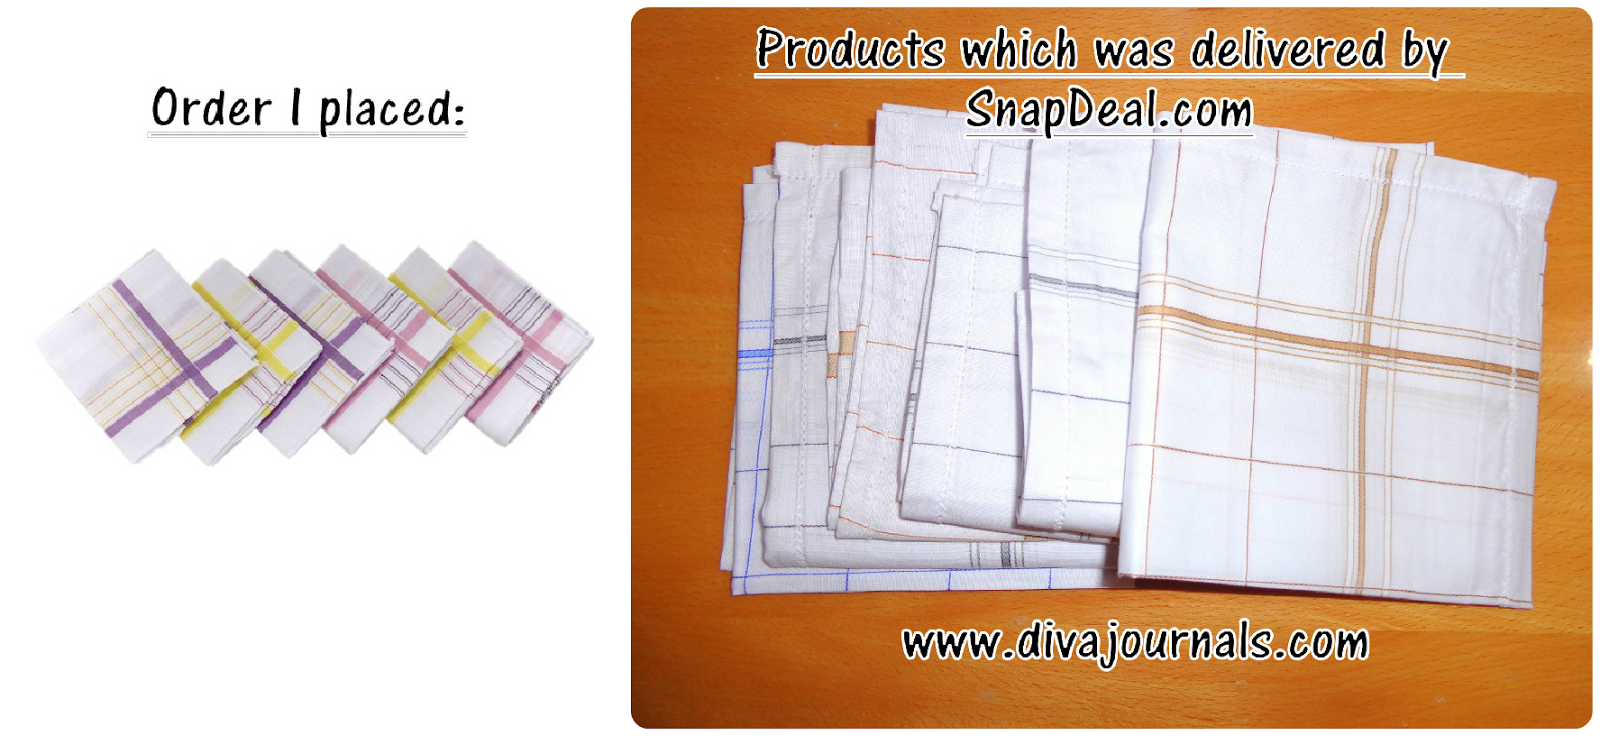 Why one shouldn't shop on Snapdeal.com ?